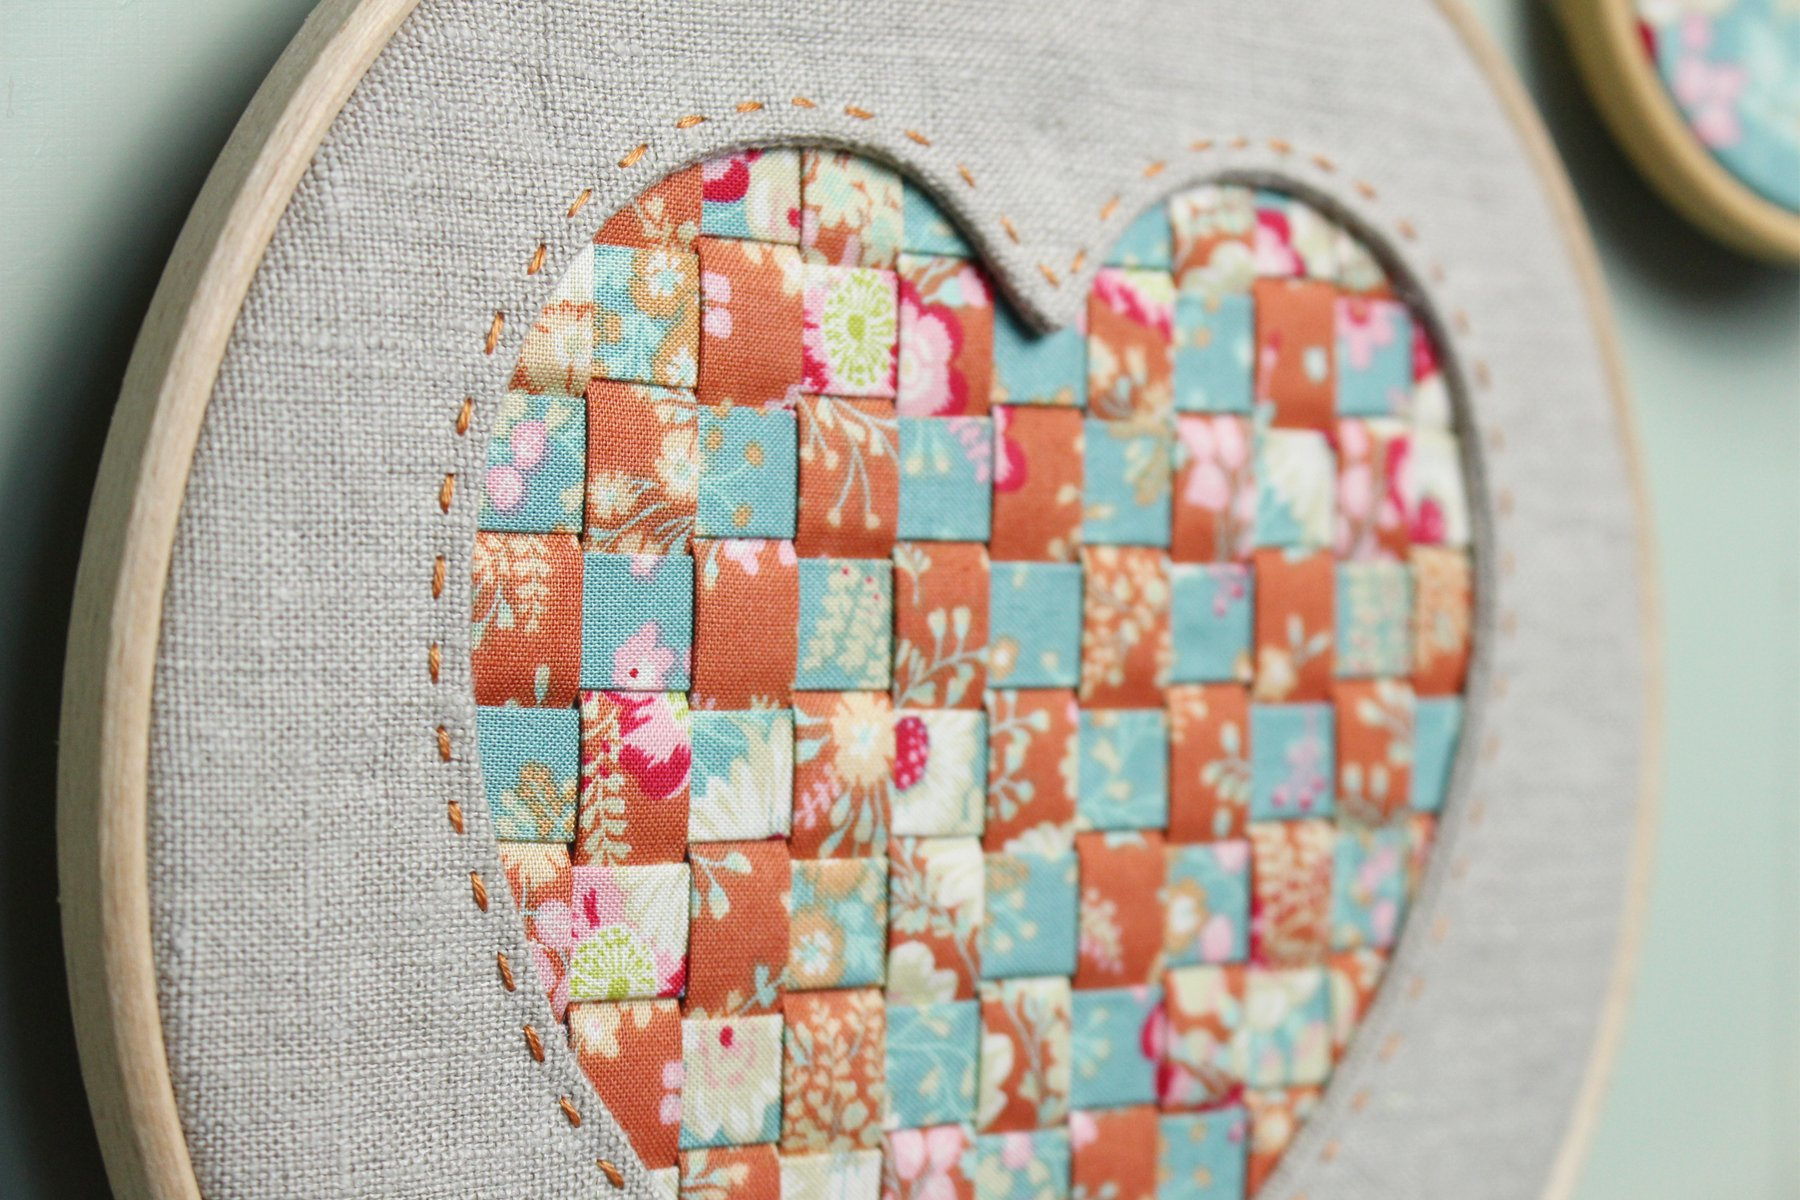 Applique Reverse Applique Woven Heart Hoop Art Tilda Blog Hop